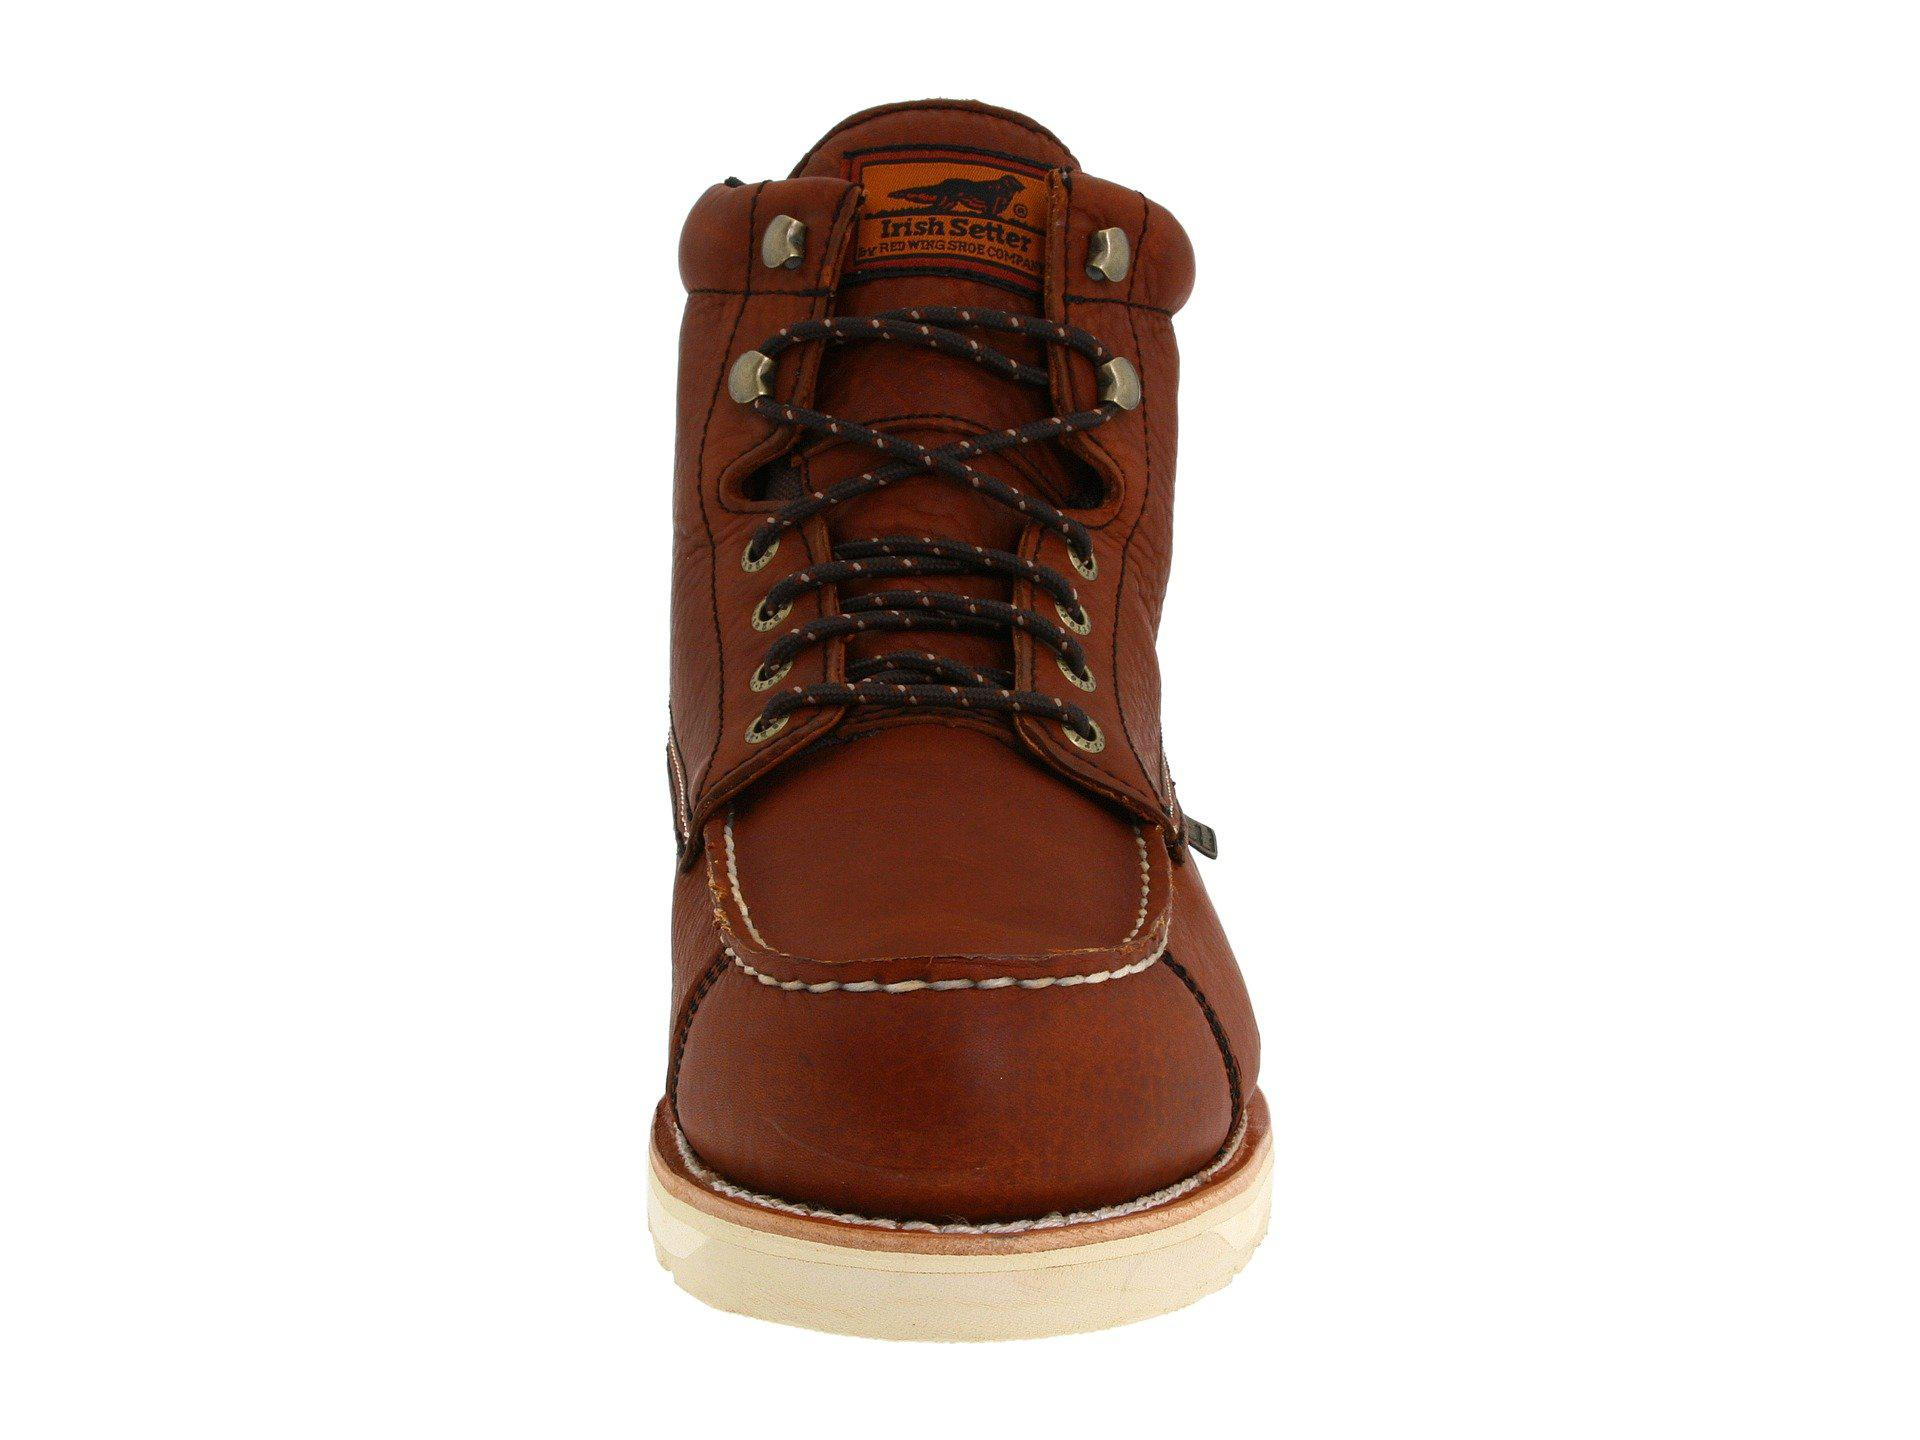 01285a29f5d Lyst - Irish Setter Wingshooter Waterproof 6 838 (amber Leather ...